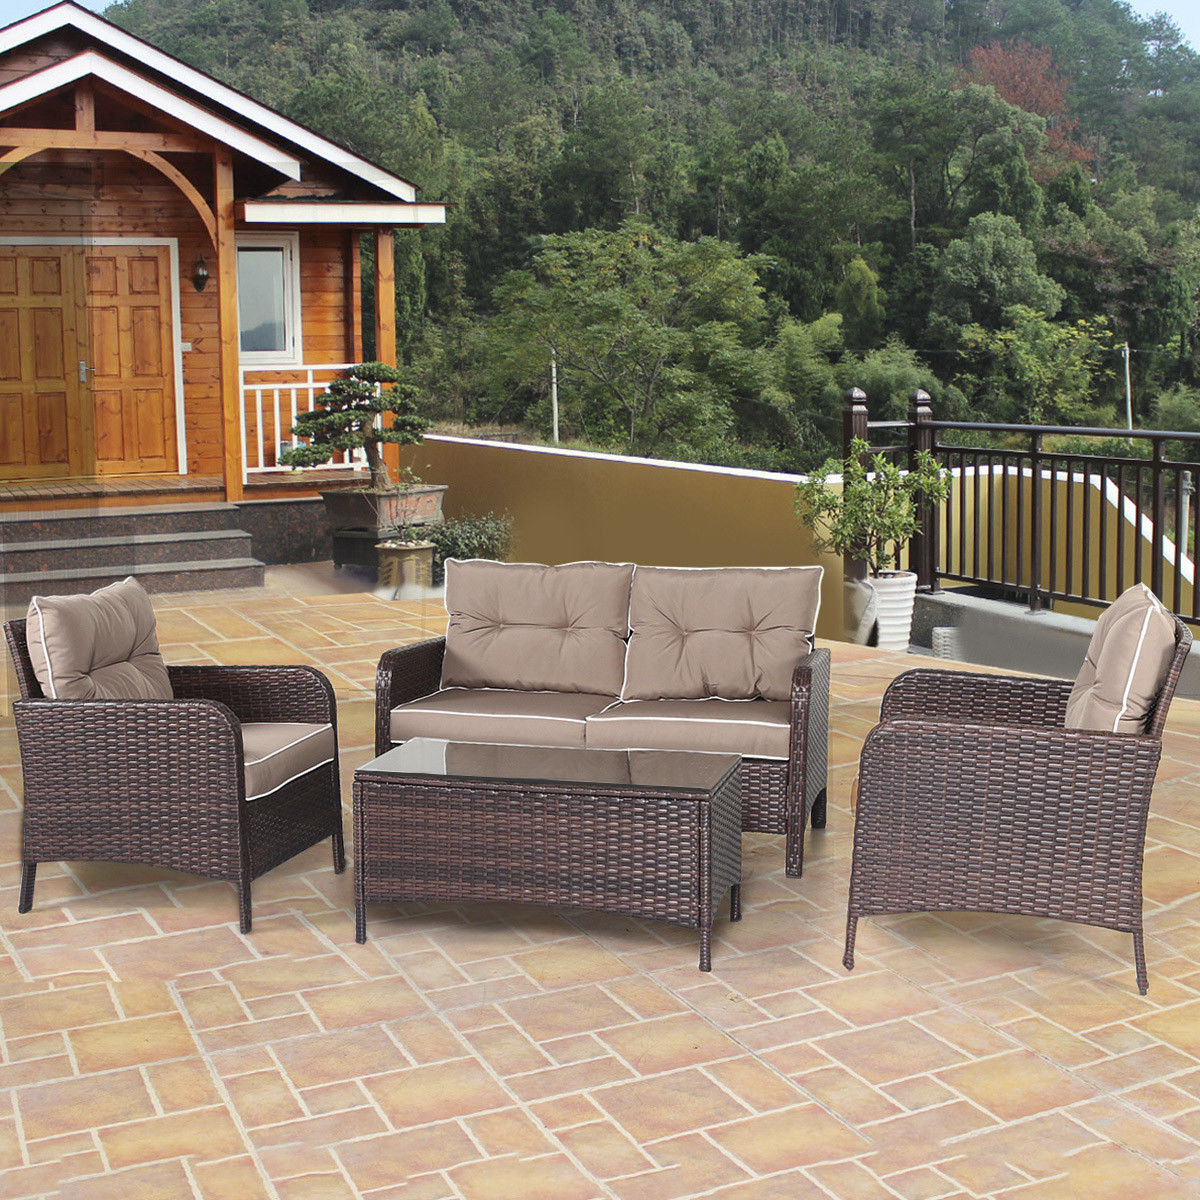 Costway 4 PCS Outdoor Patio Rattan Wicker Furniture Set Sofa Loveseat W/ Cushions